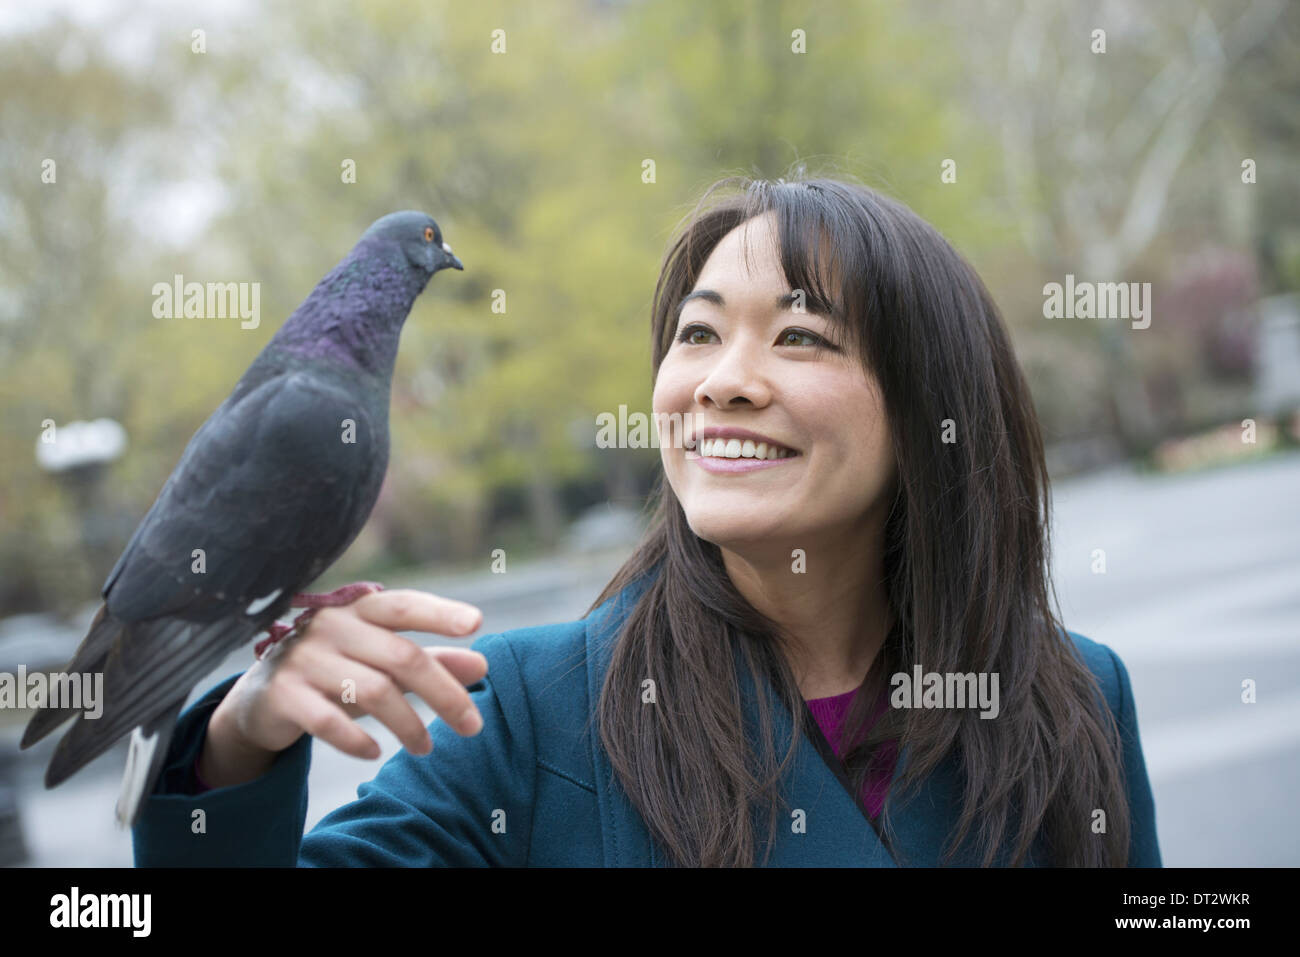 A young woman in the park with a pigeon perched on her wrist - Stock Image